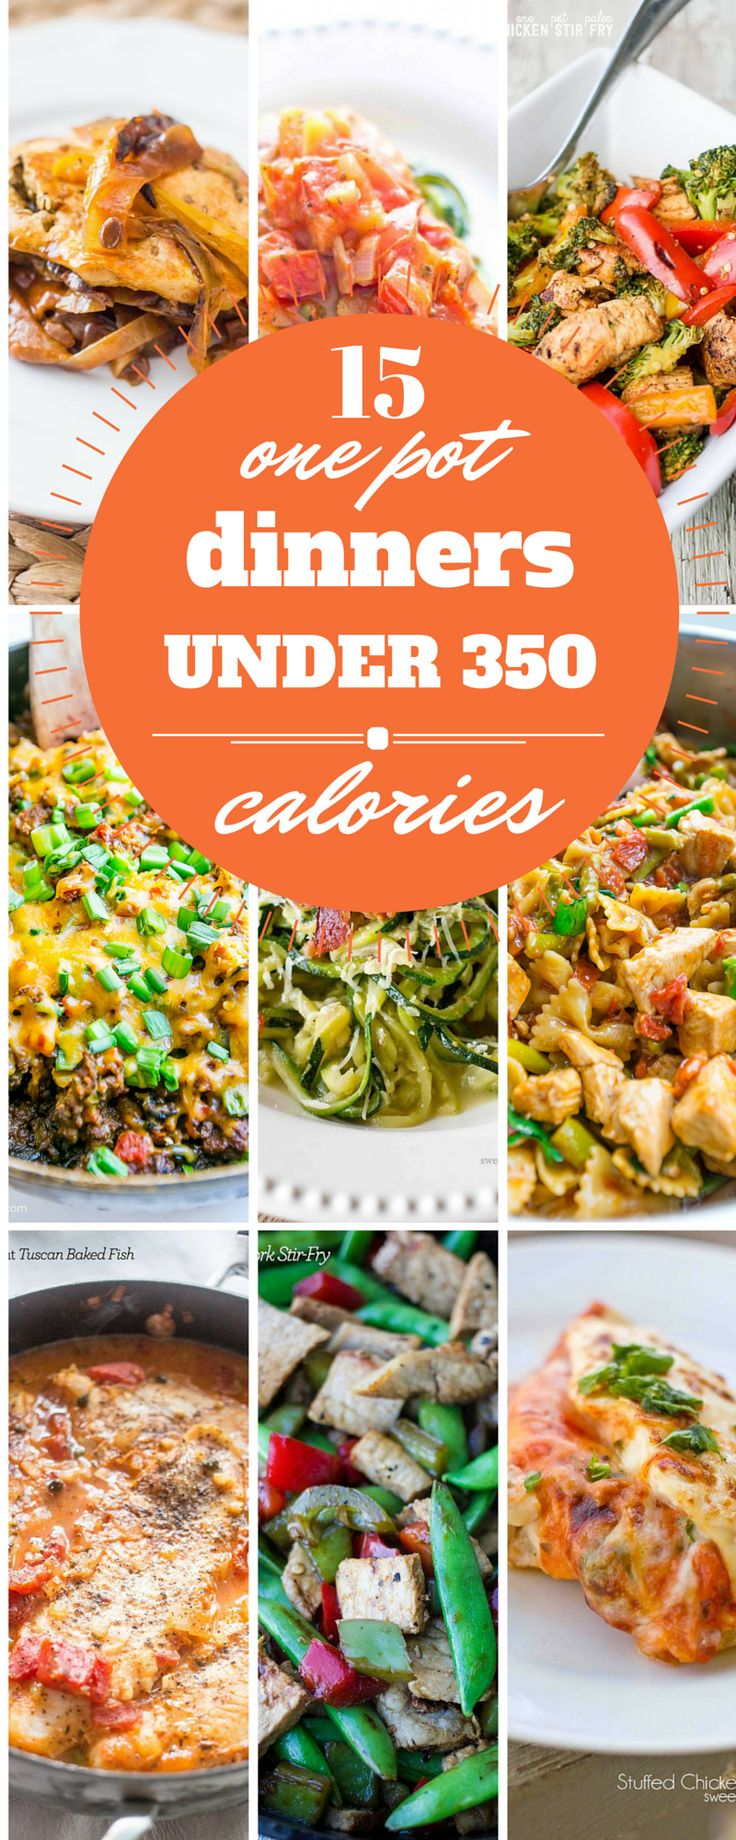 15 one pot dinners under 350 calories- rich, comforting, and easy meals that are family pleasers that won't derail your diet!